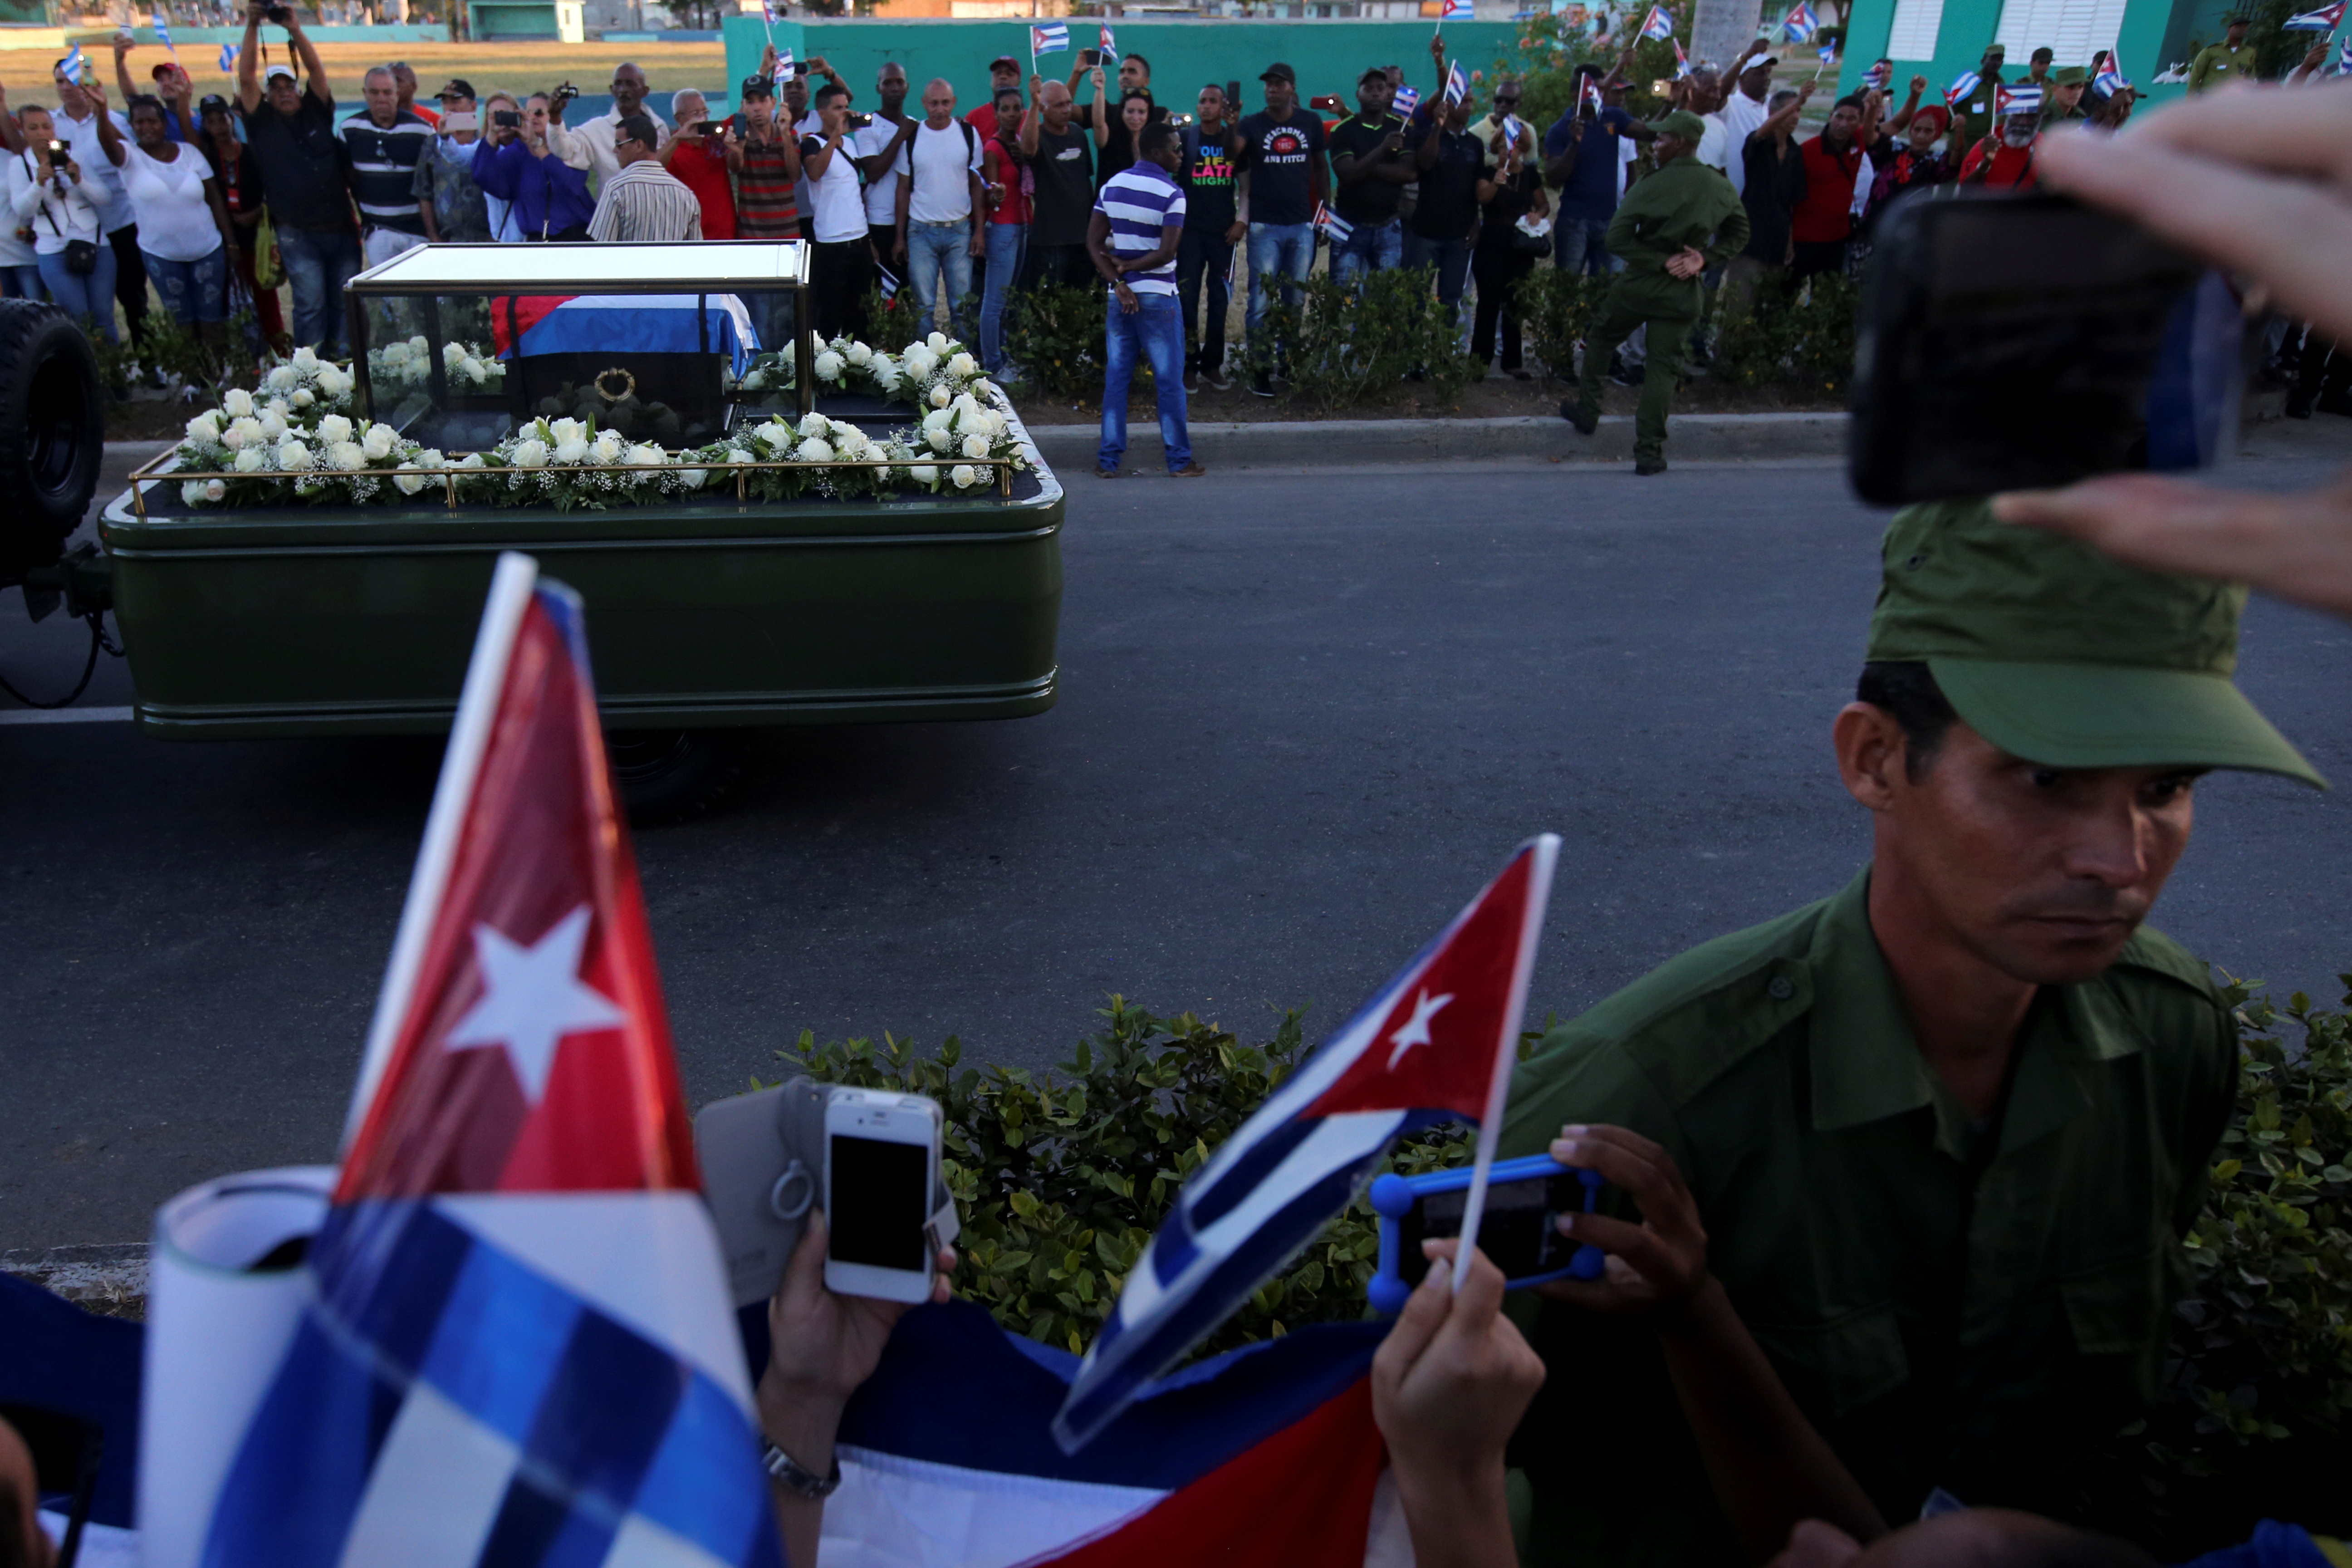 A soldier stands as he guards the cortege carrying Cuba's former President Fidel Castro's ashes to a cemetery in Santiago de Cuba, Cuba December 4, 2016. Photo By Carlos Barria/Reuters